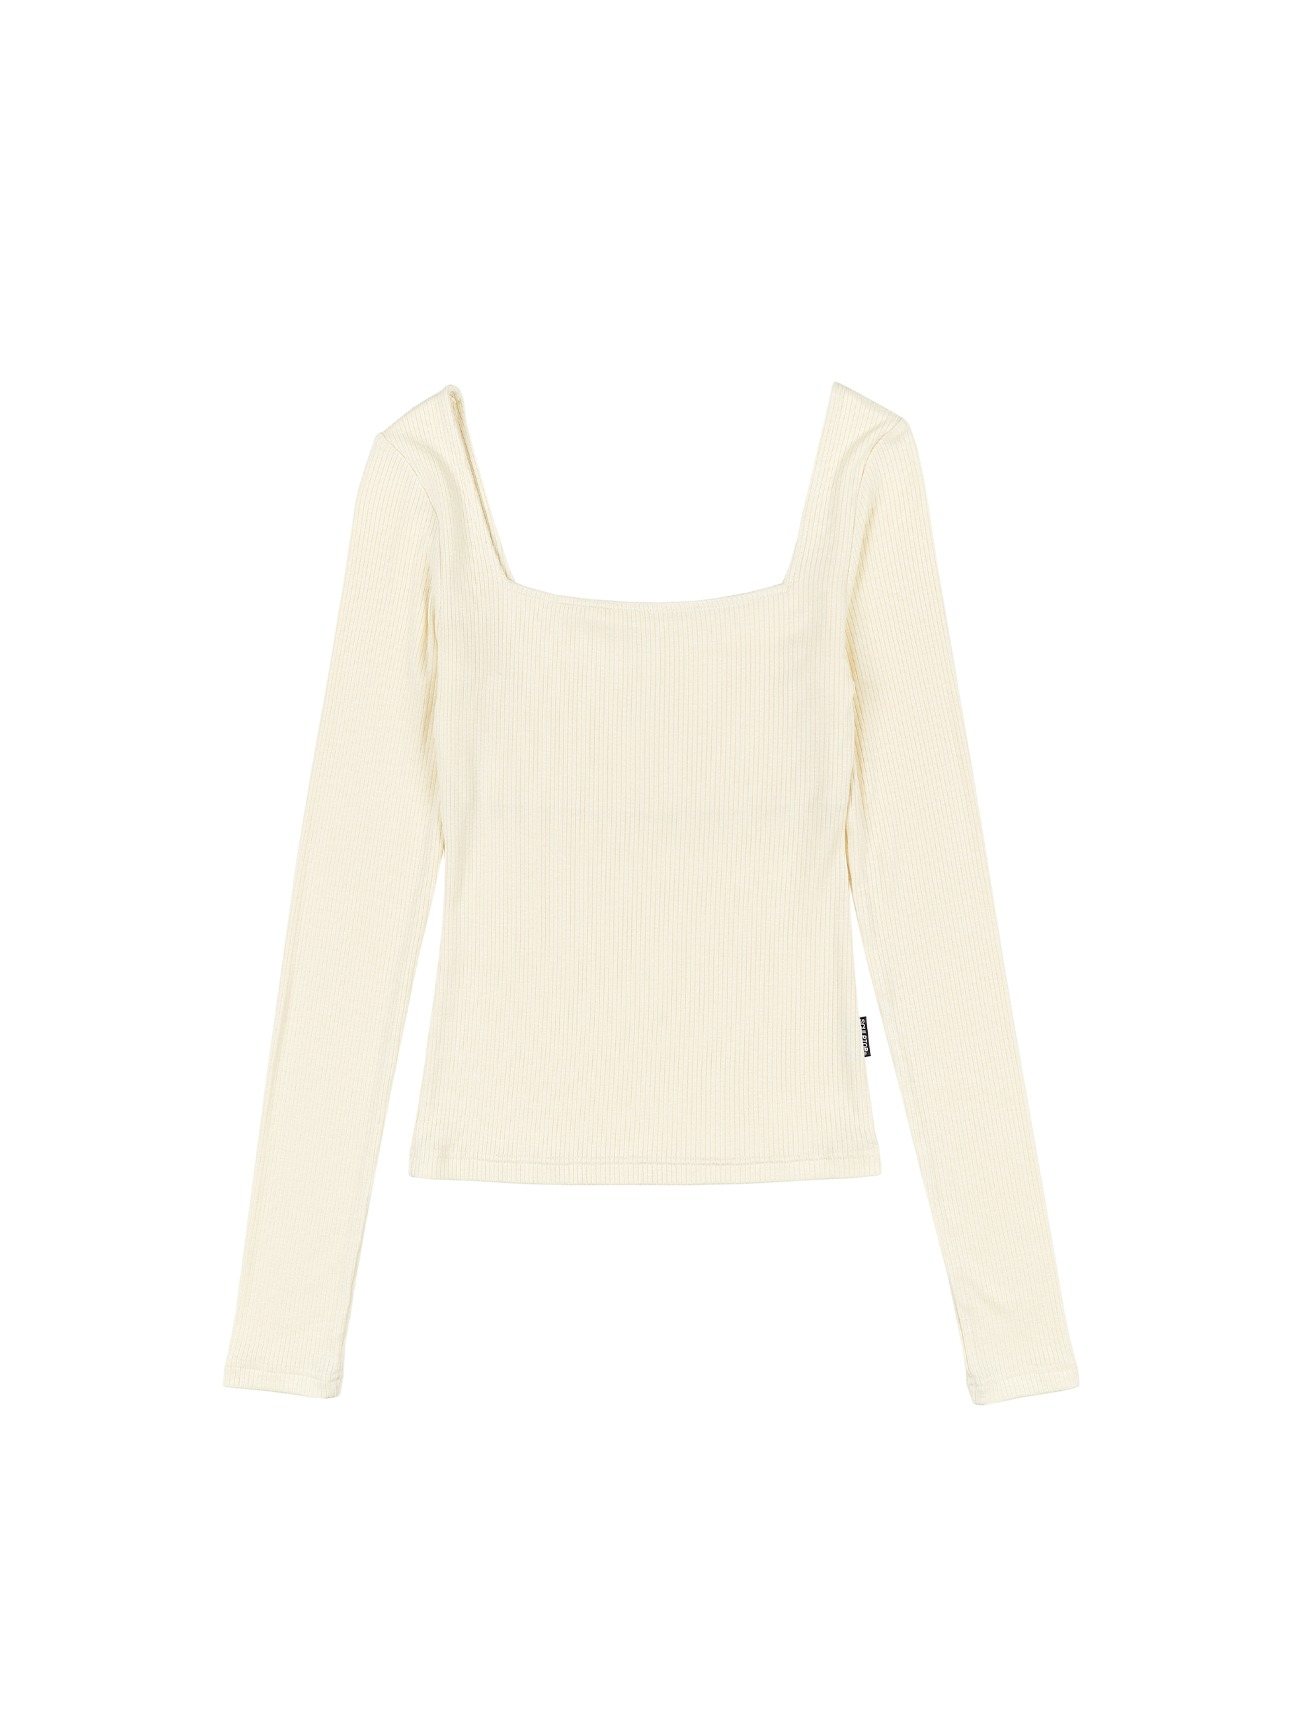 Soft Modal Square Top Ivory